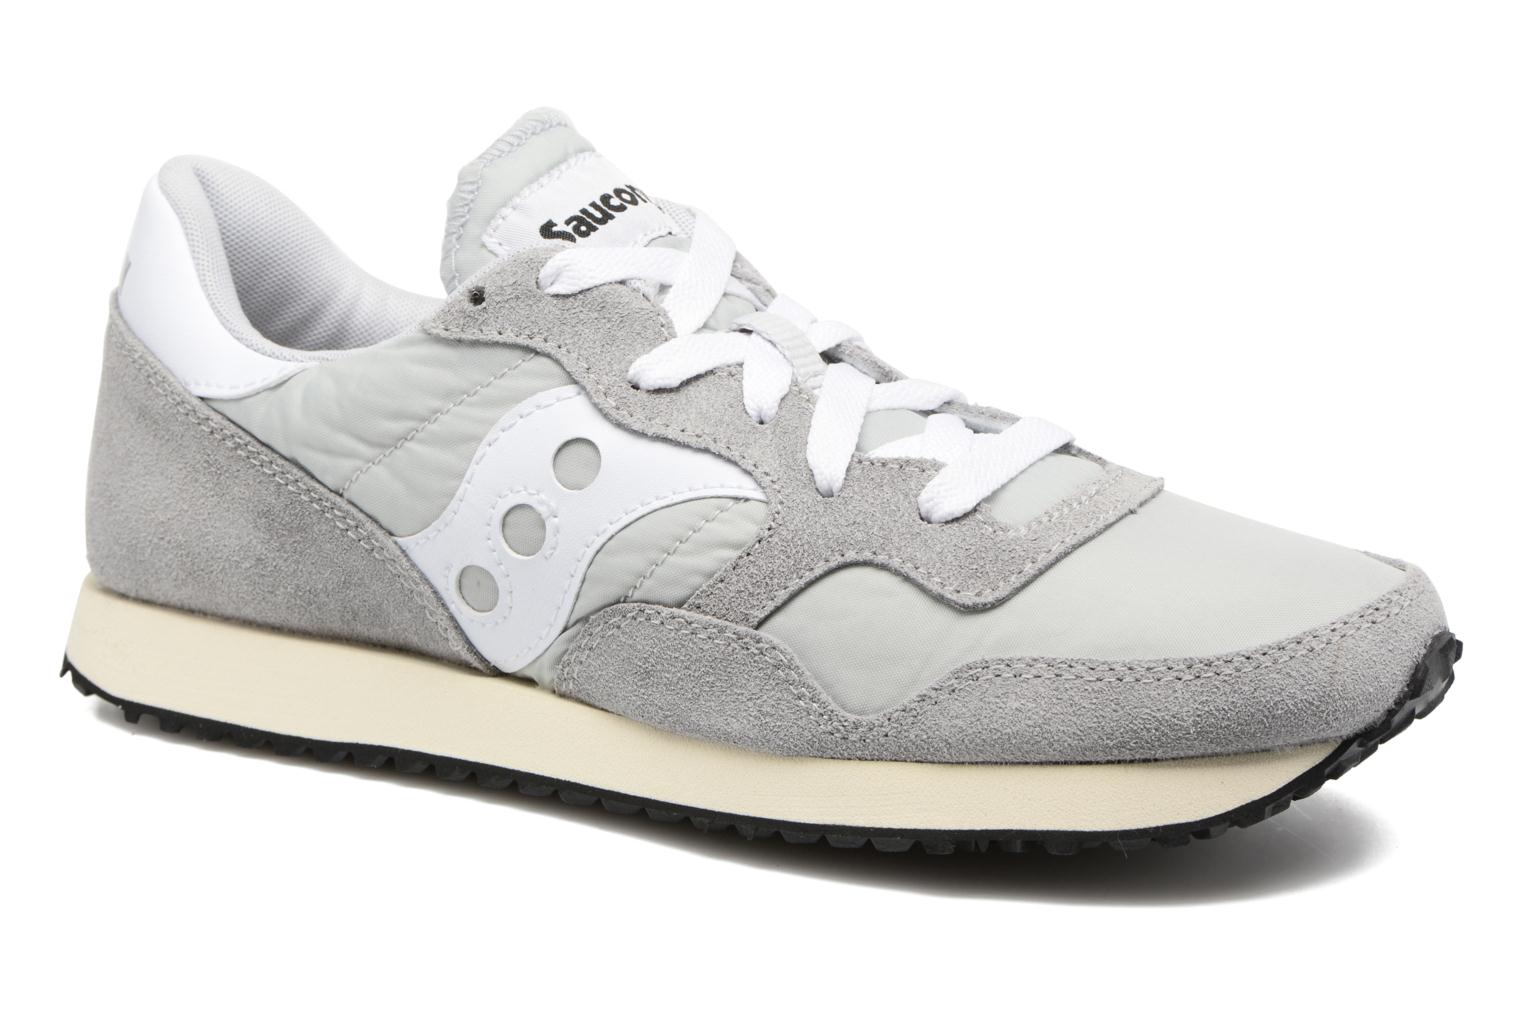 Dxn trainer Vintage Grey white